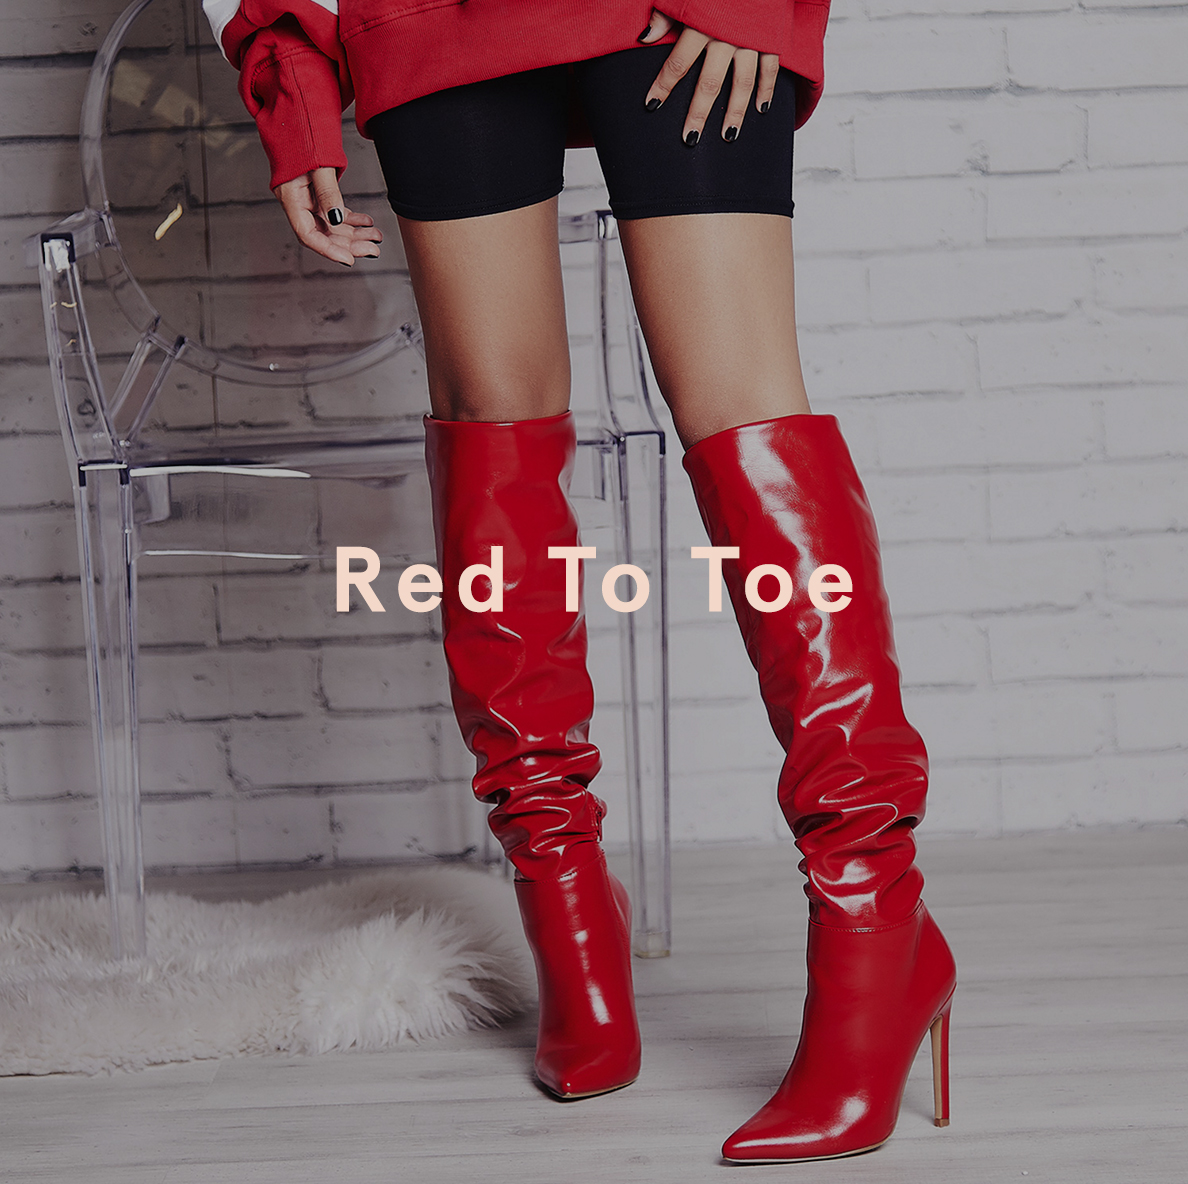 Red To Toe